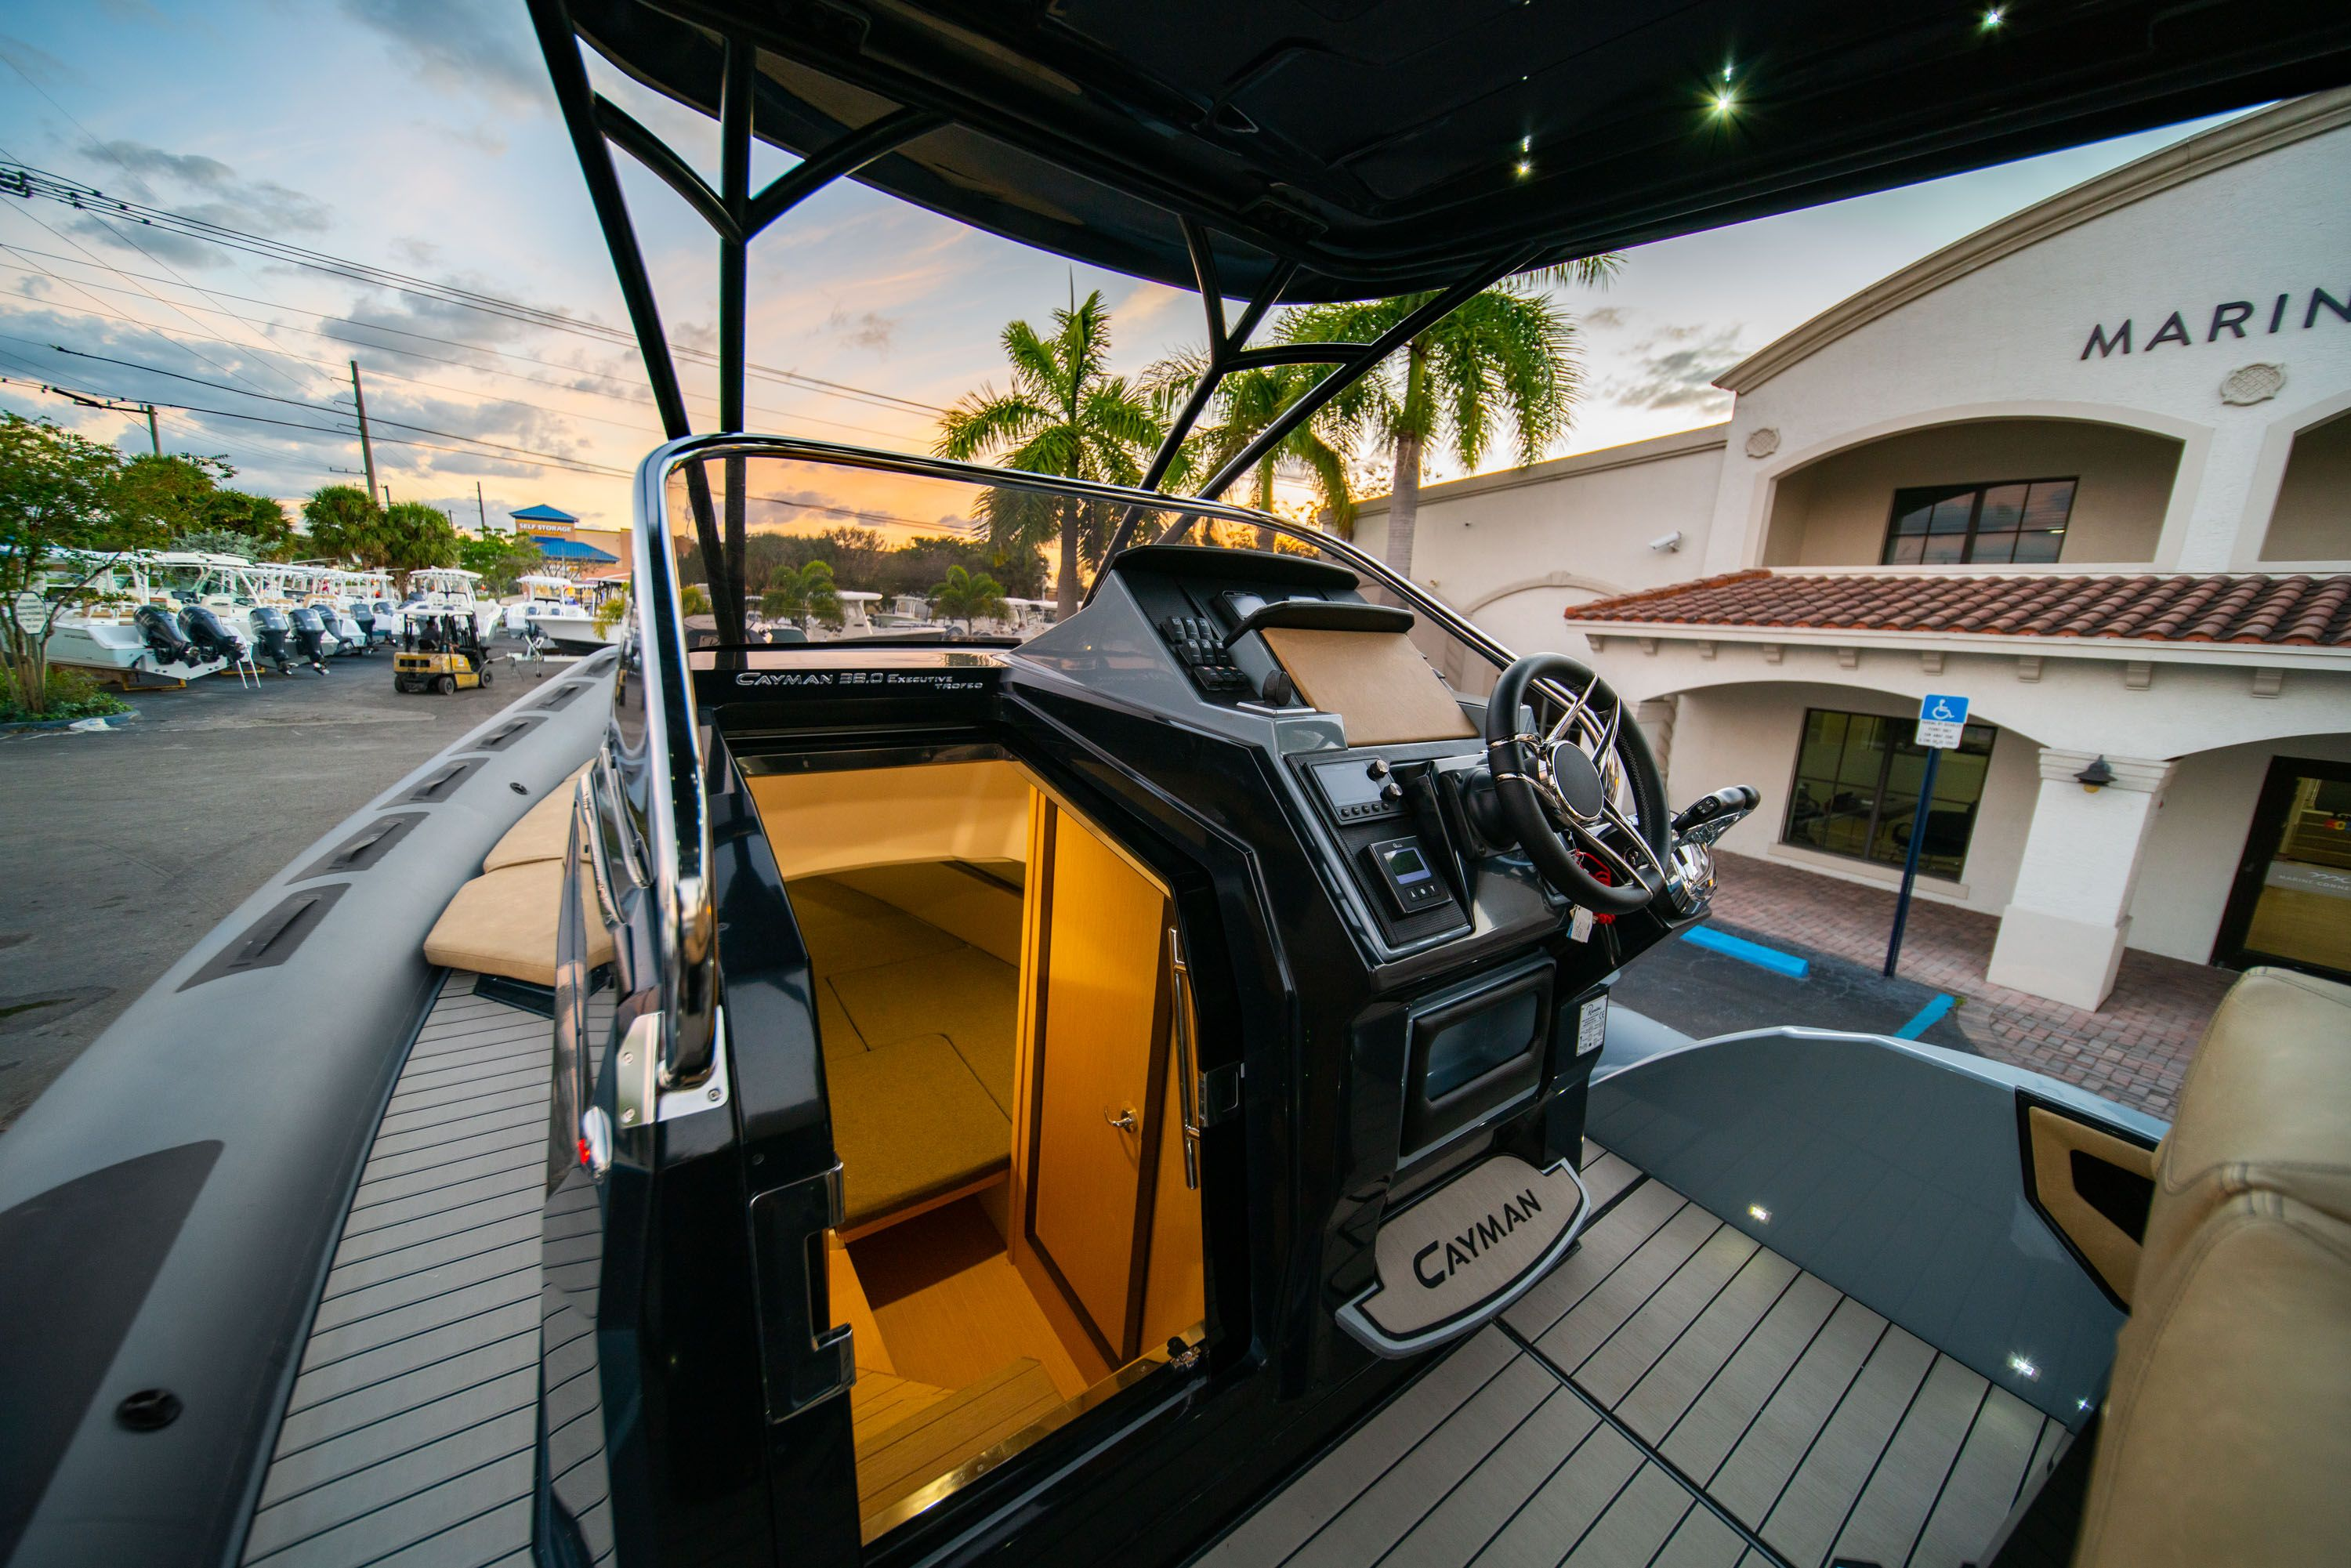 Thumbnail 24 for New 2019 Ranieri Cayman 38 Executive boat for sale in West Palm Beach, FL